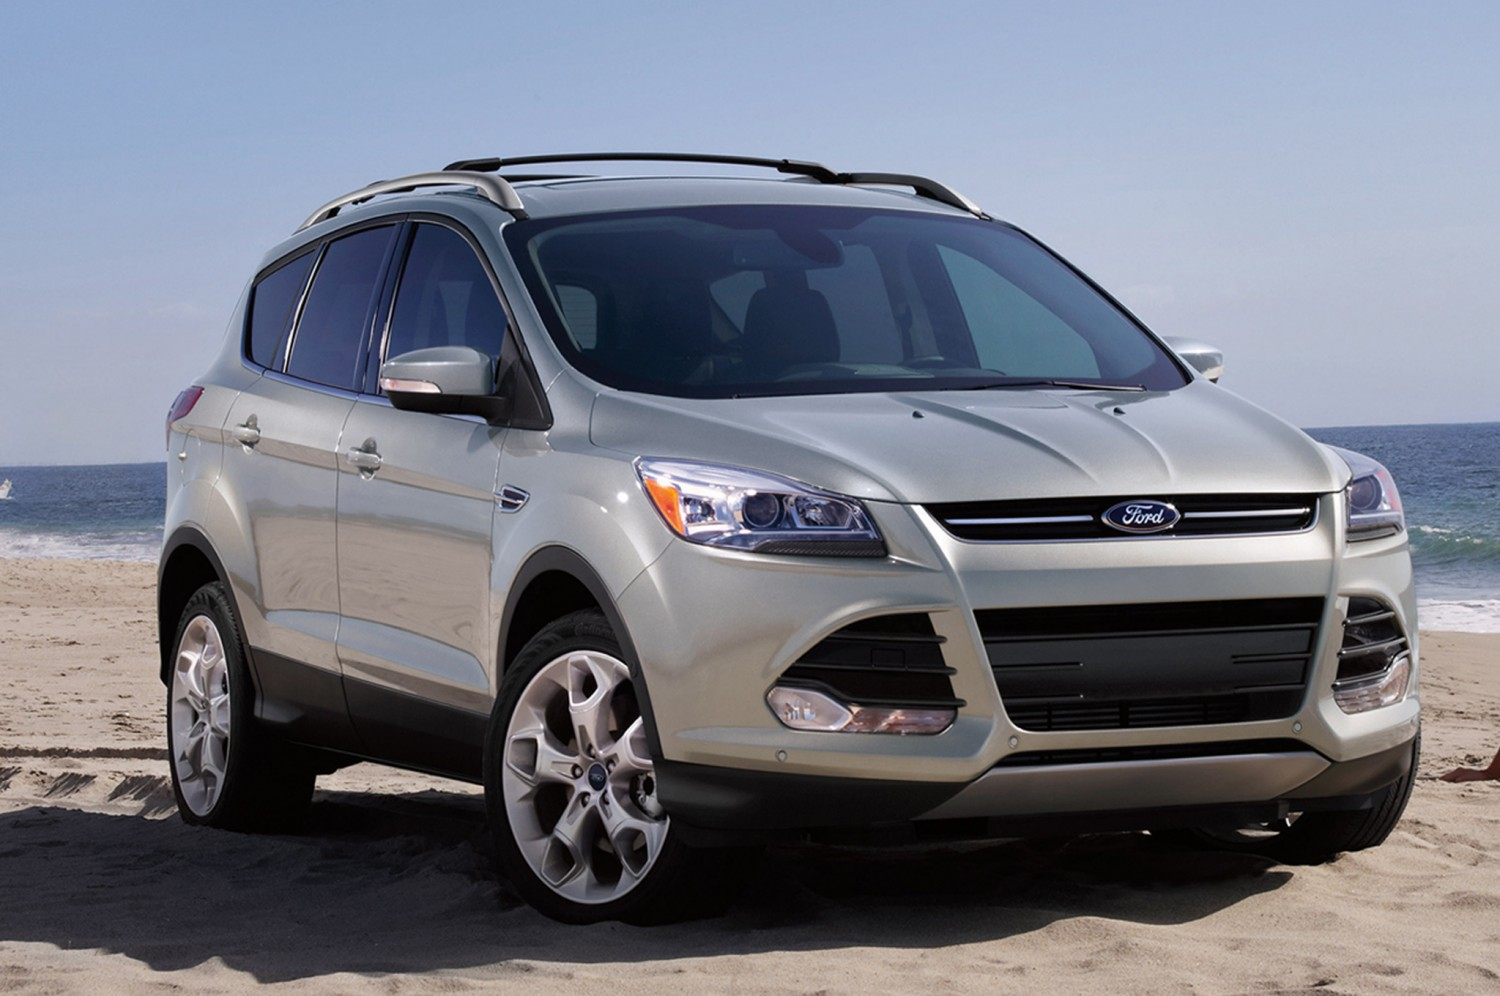 2014 Ford Escape #3